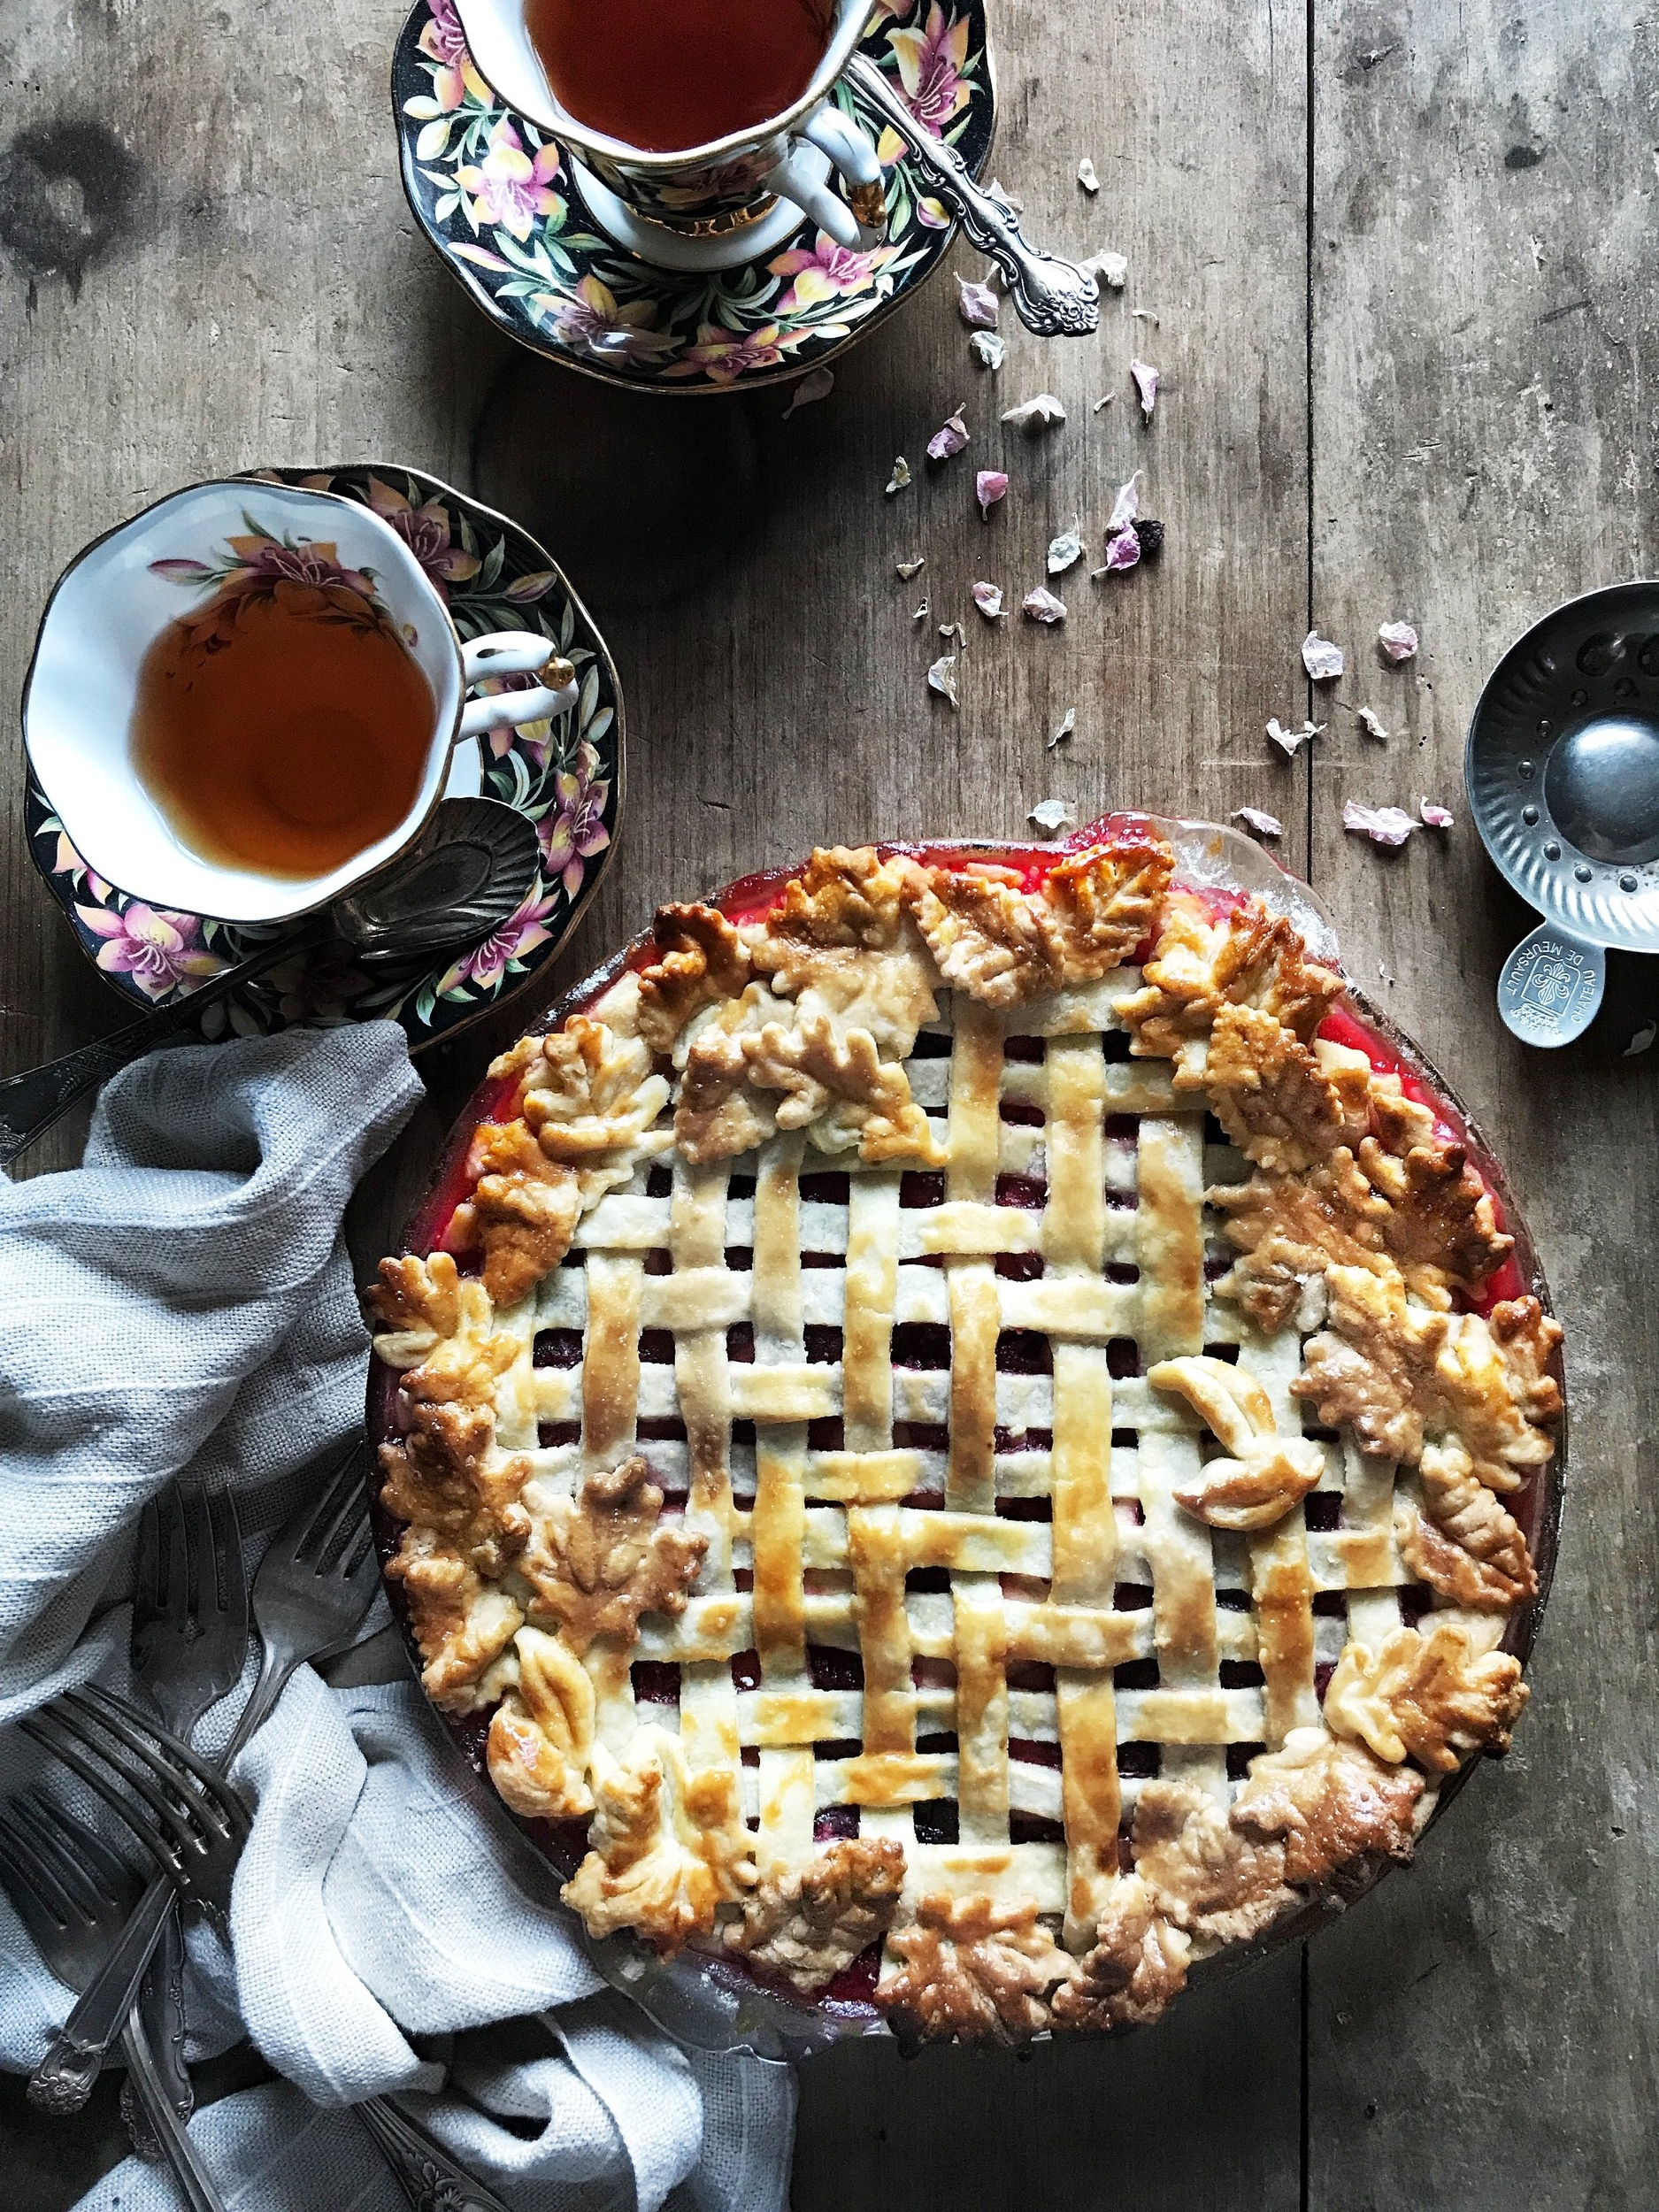 Judy Kim herringbone lattice pie